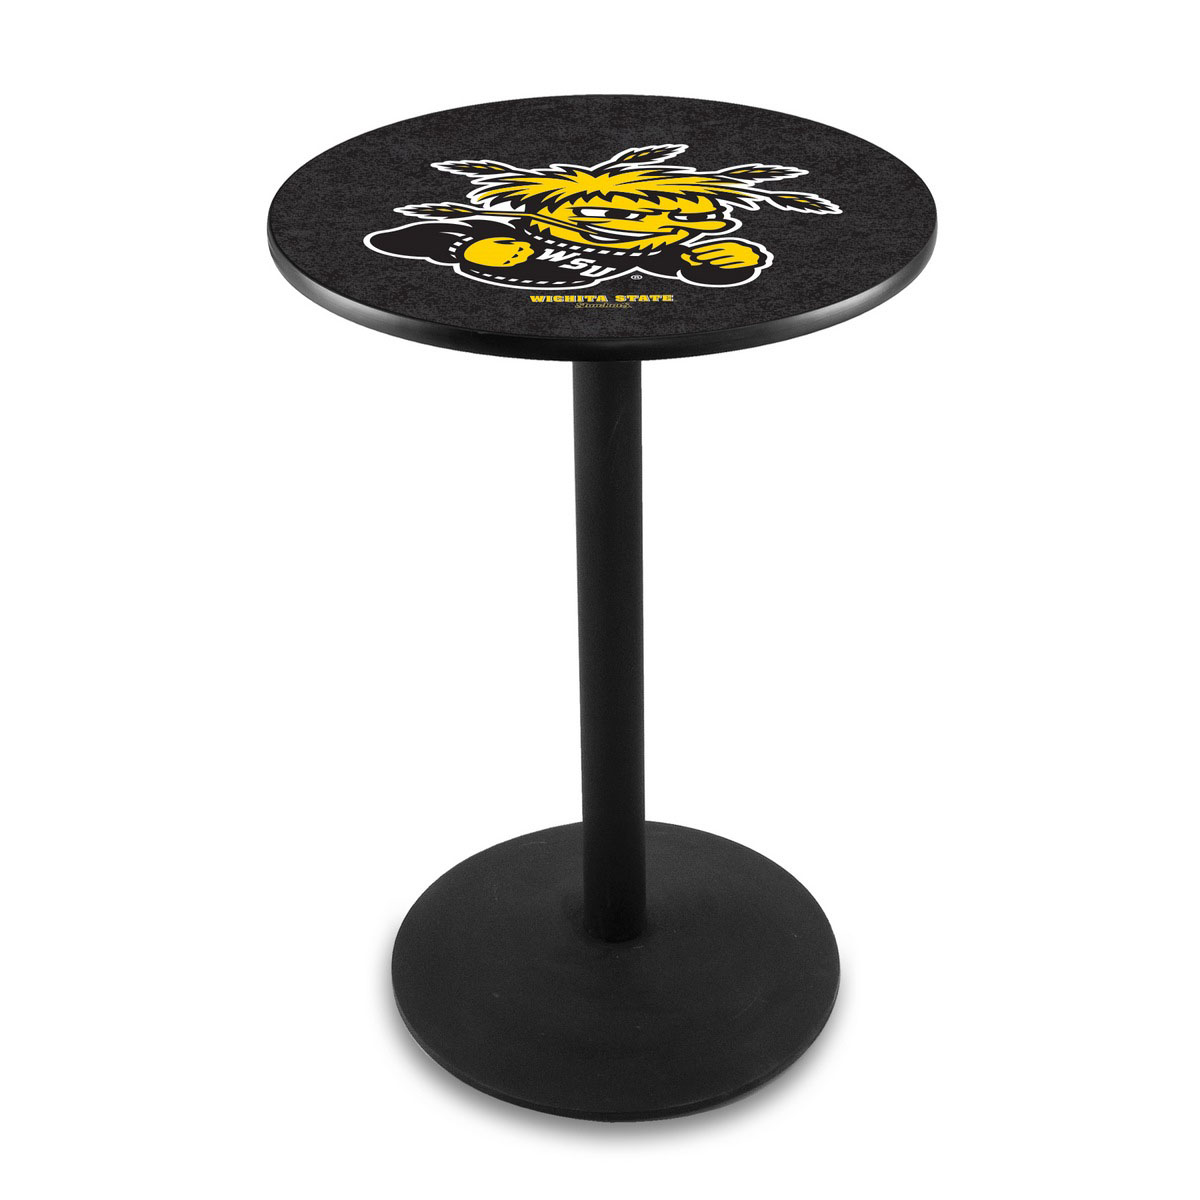 New Wichita State University Logo Pub Bar Table Round Stand 17 1837